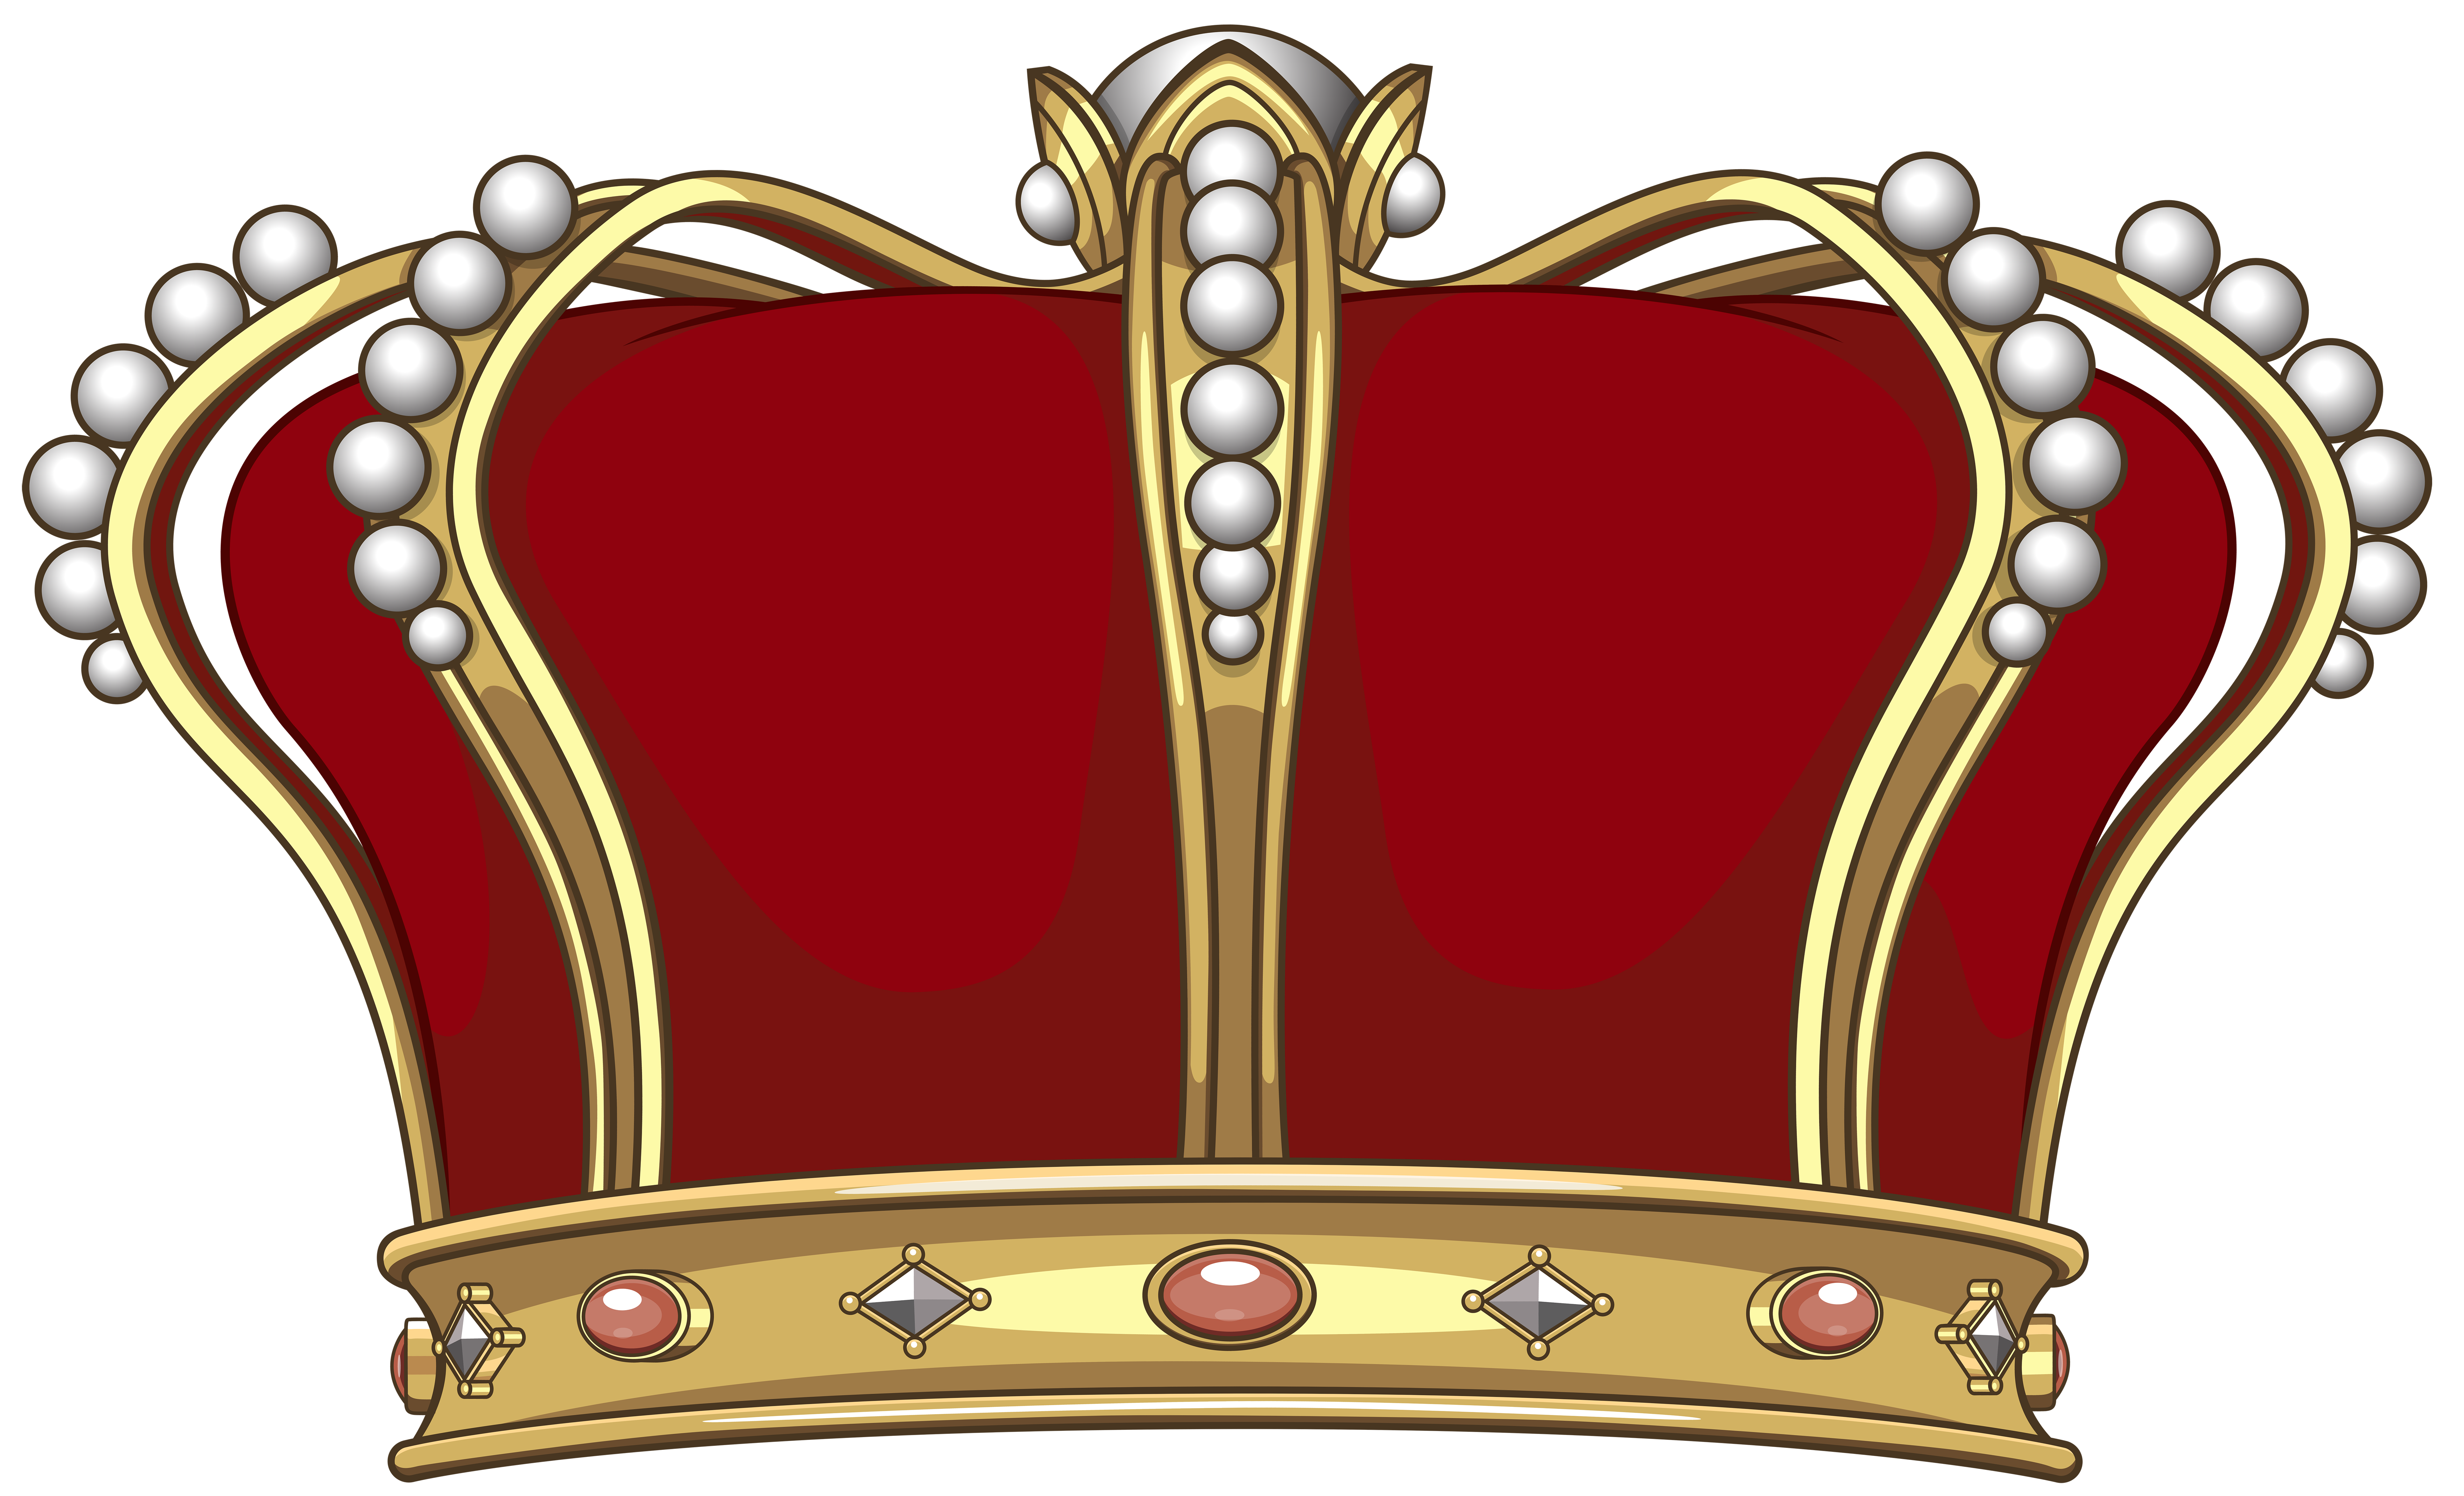 King crown png. Clip art image gallery